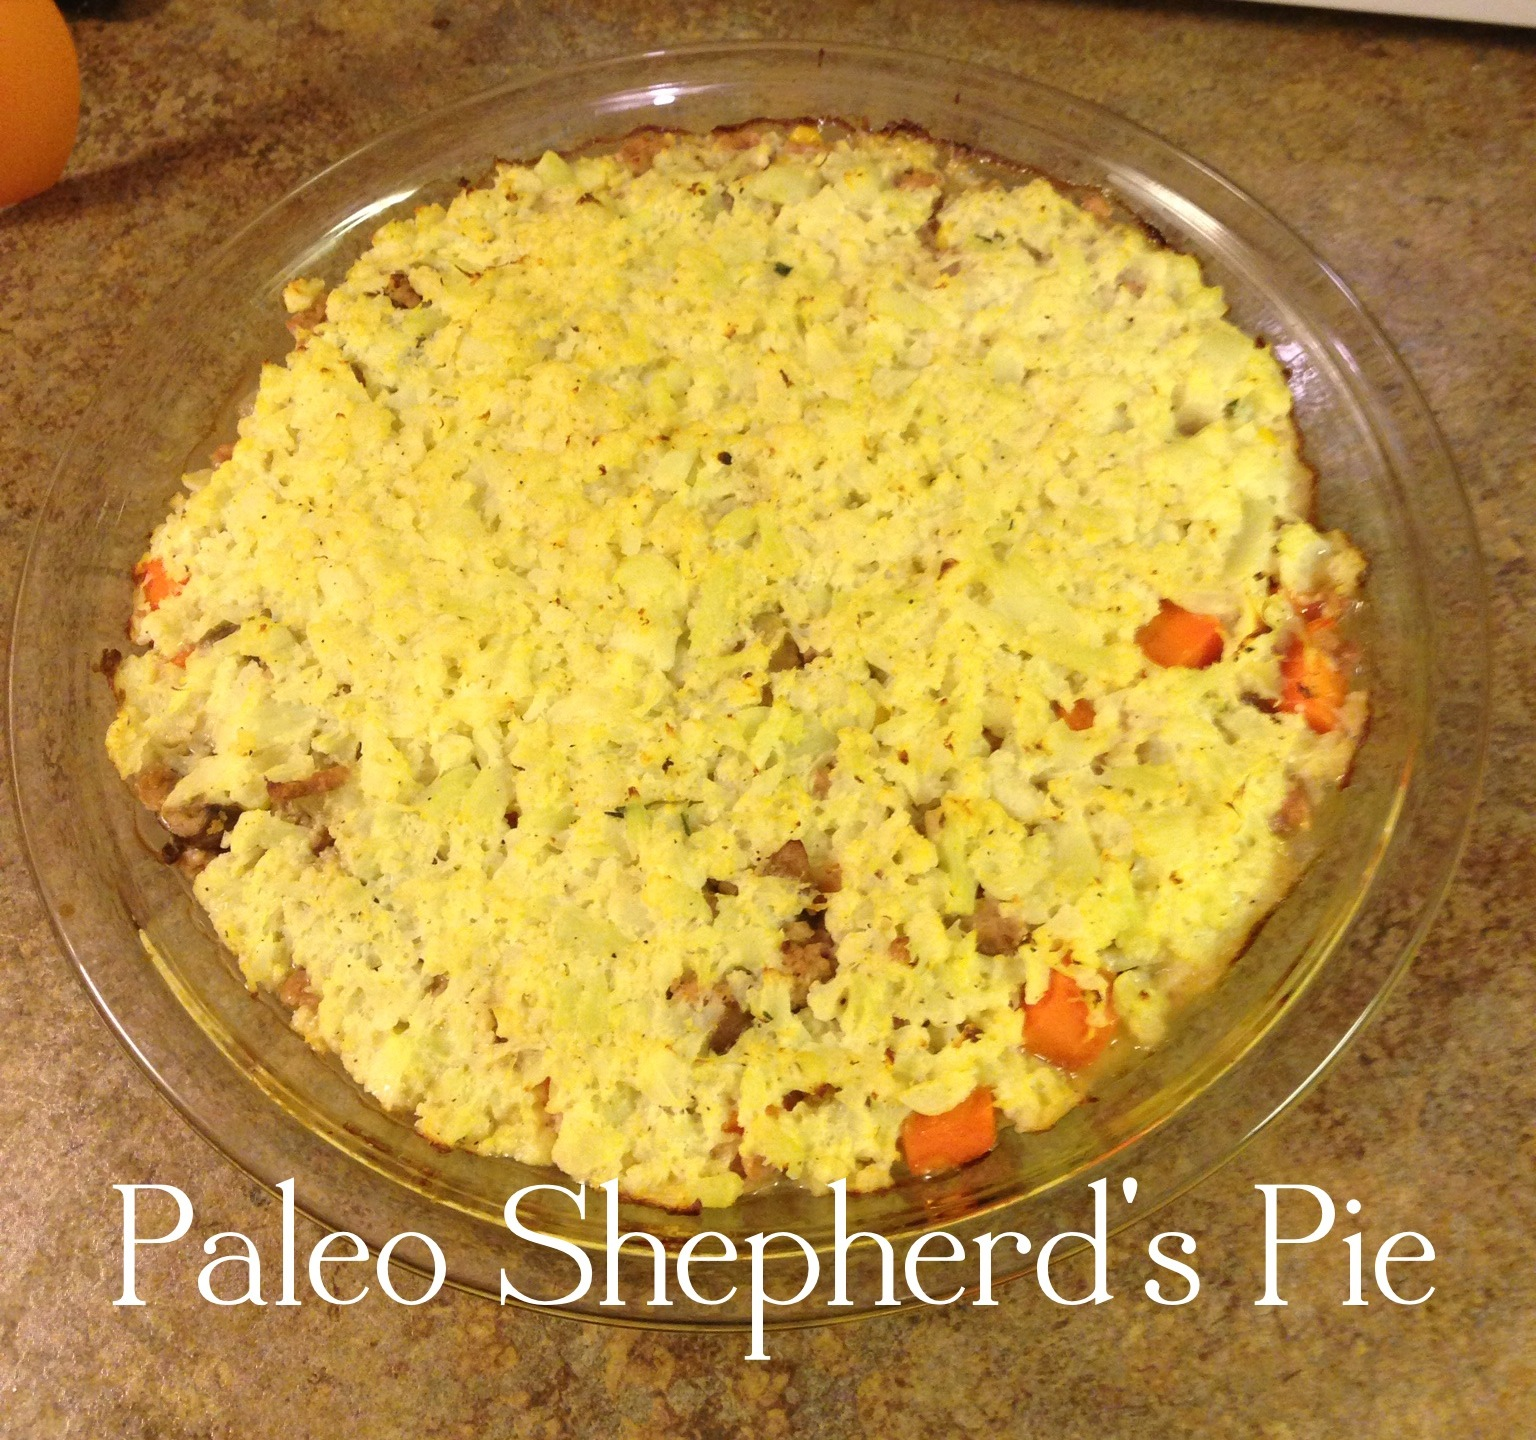 Don't Cave In: Paleo Shepherd's Pie